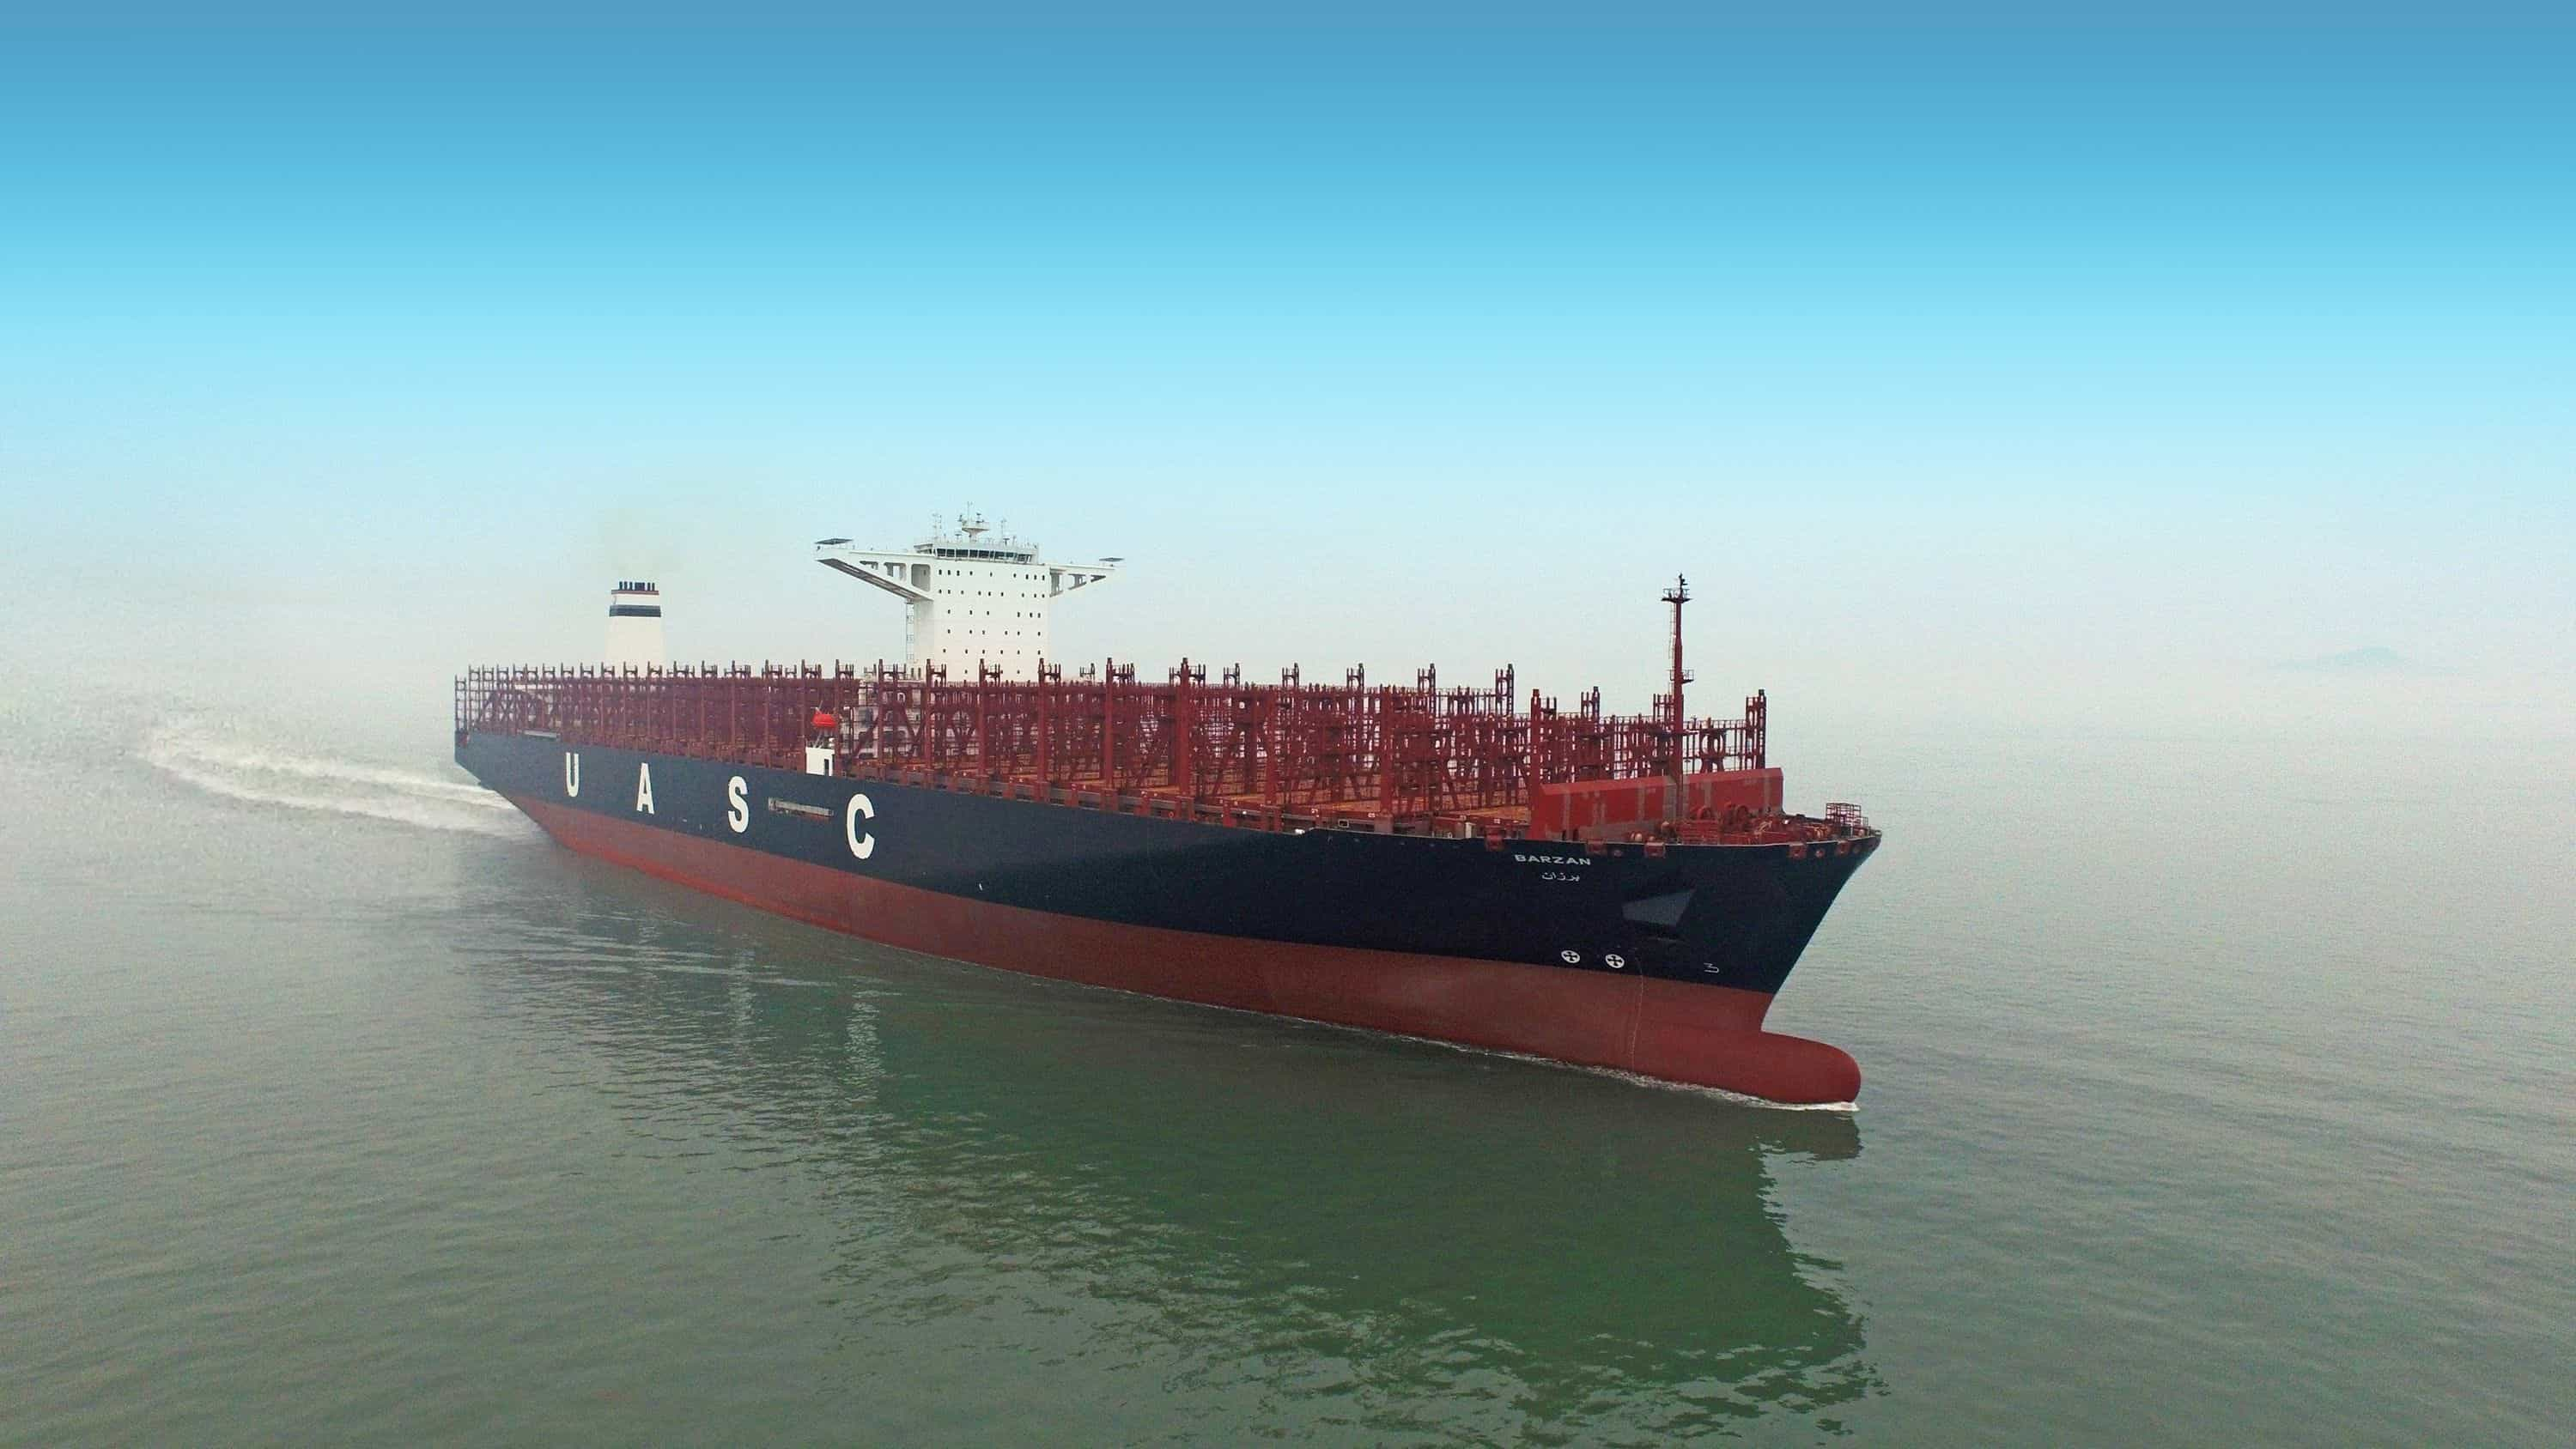 UASC names first LNG-ready 18,800 teu vessel